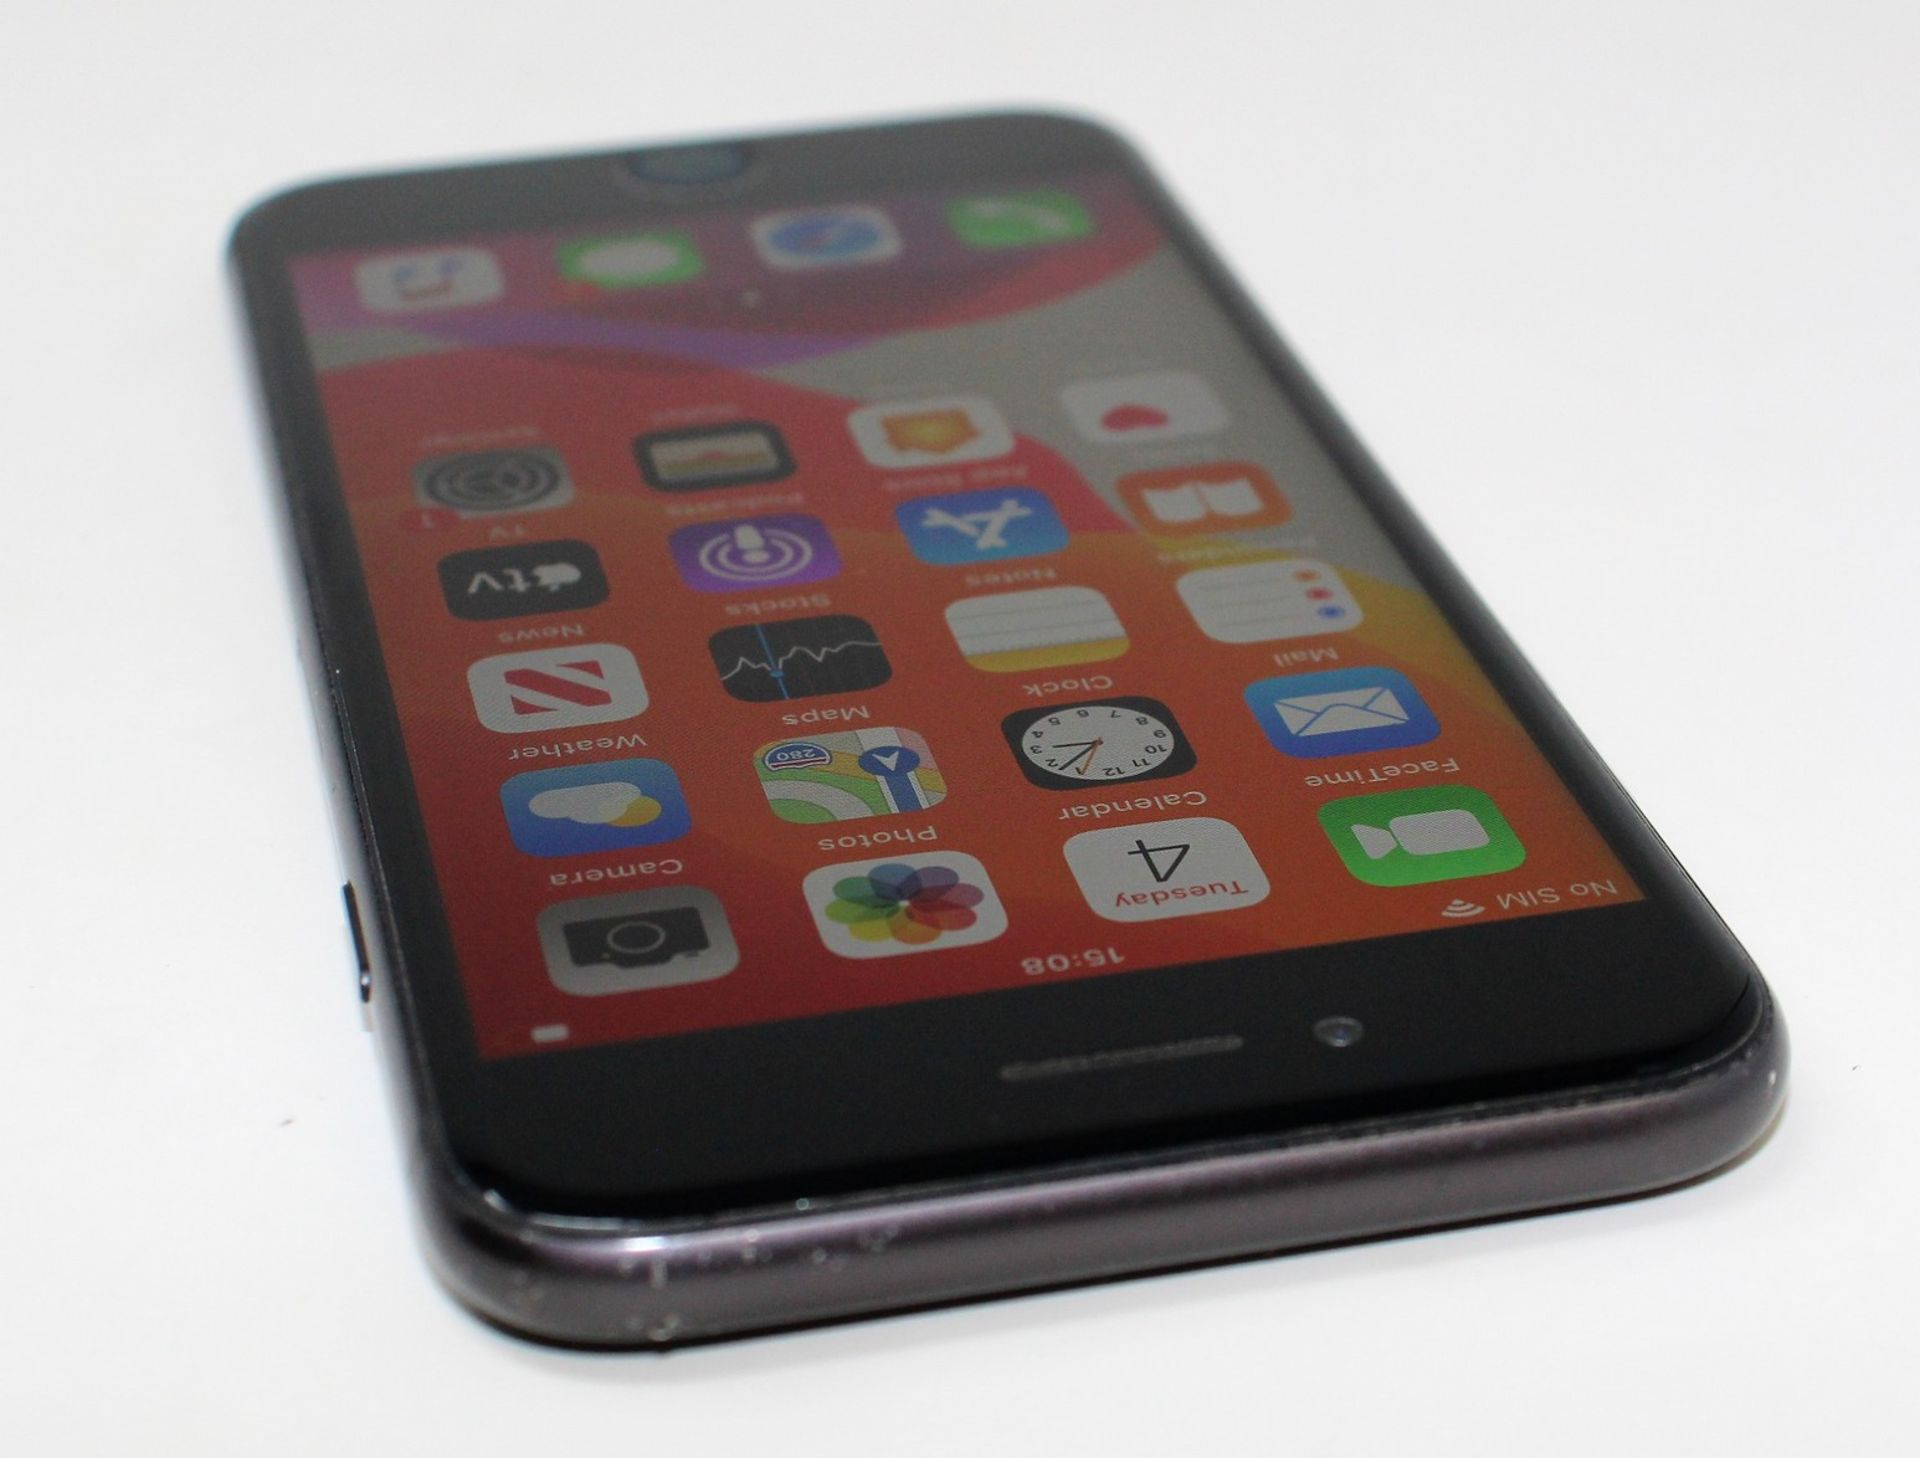 A pre-owned Apple iPhone 8 (AT&T/T-Mobile/Global/A1905) 64GB in Space Grey (iCloud activation clear, - Image 5 of 8